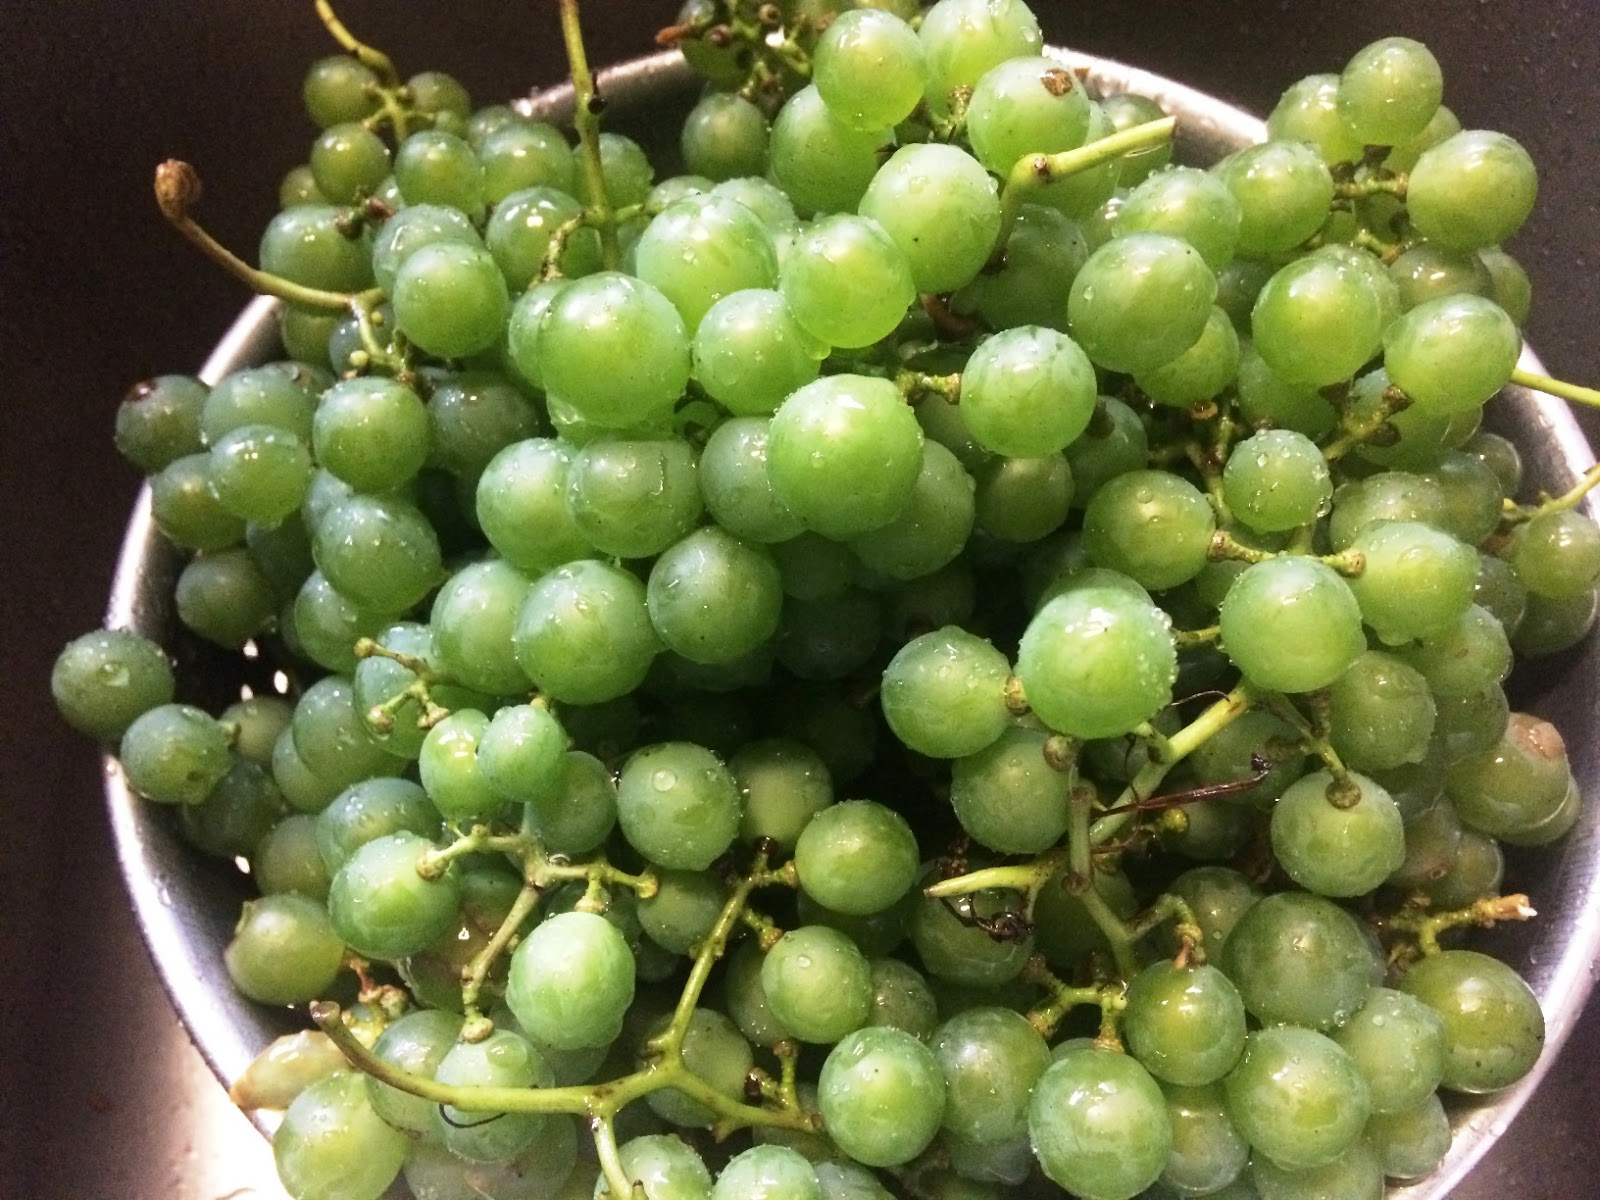 How To Make Grapejuice